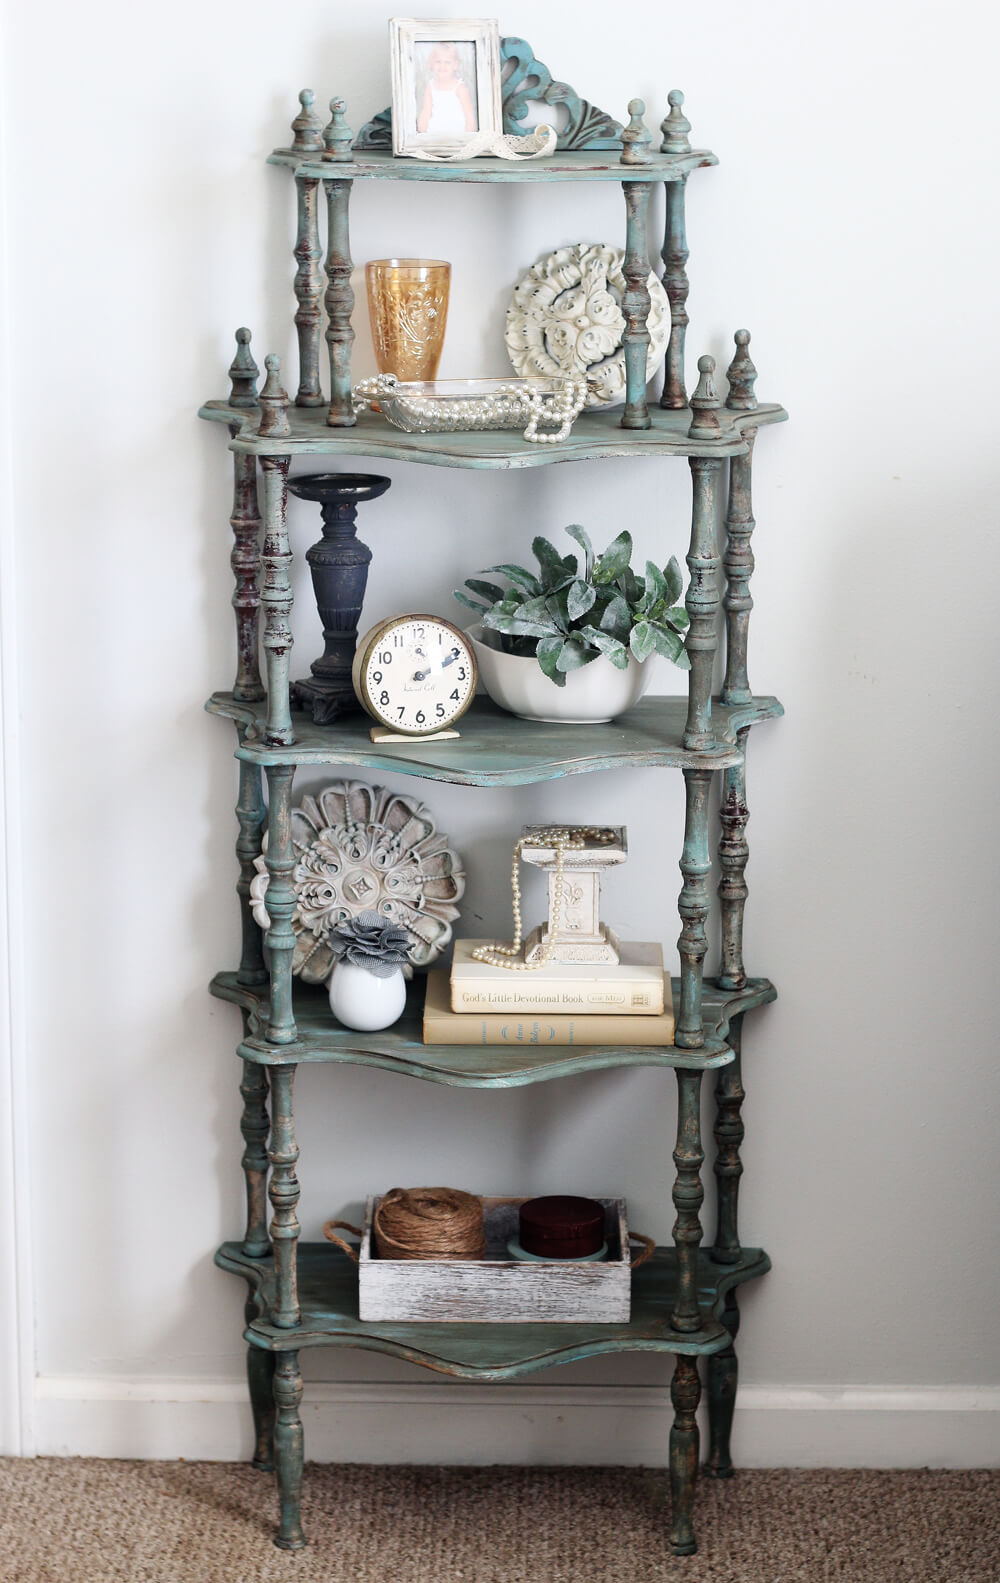 Makeover a Vintage Shelf with Layered Chalk Paint and Wax